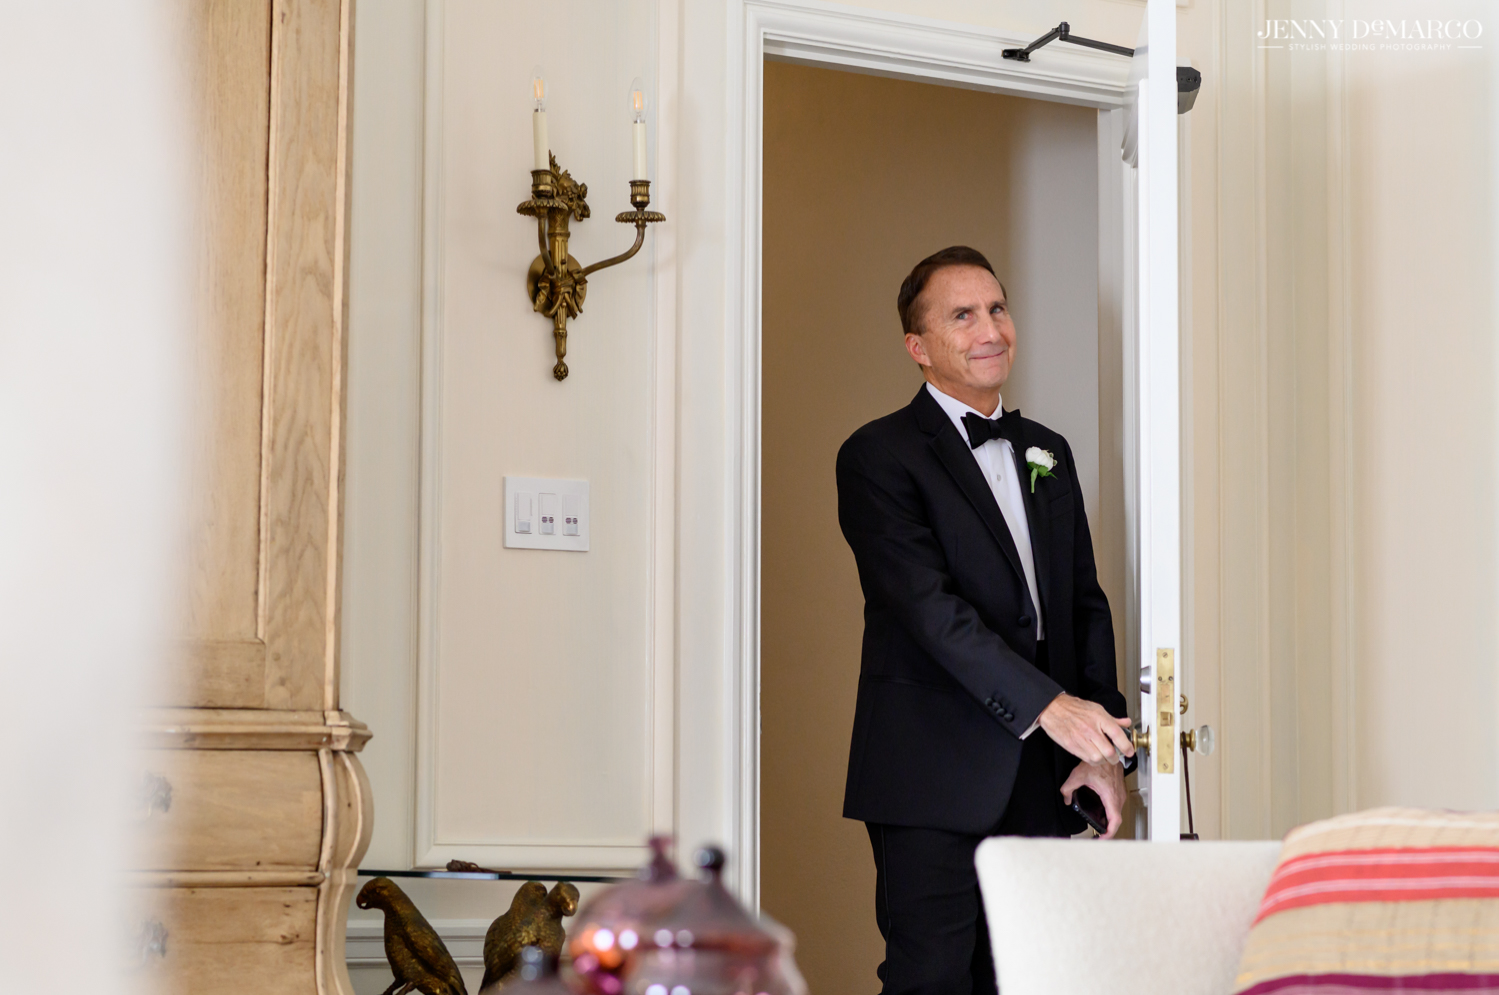 father of the bride seeing his daughter in her wedding dress for the first time